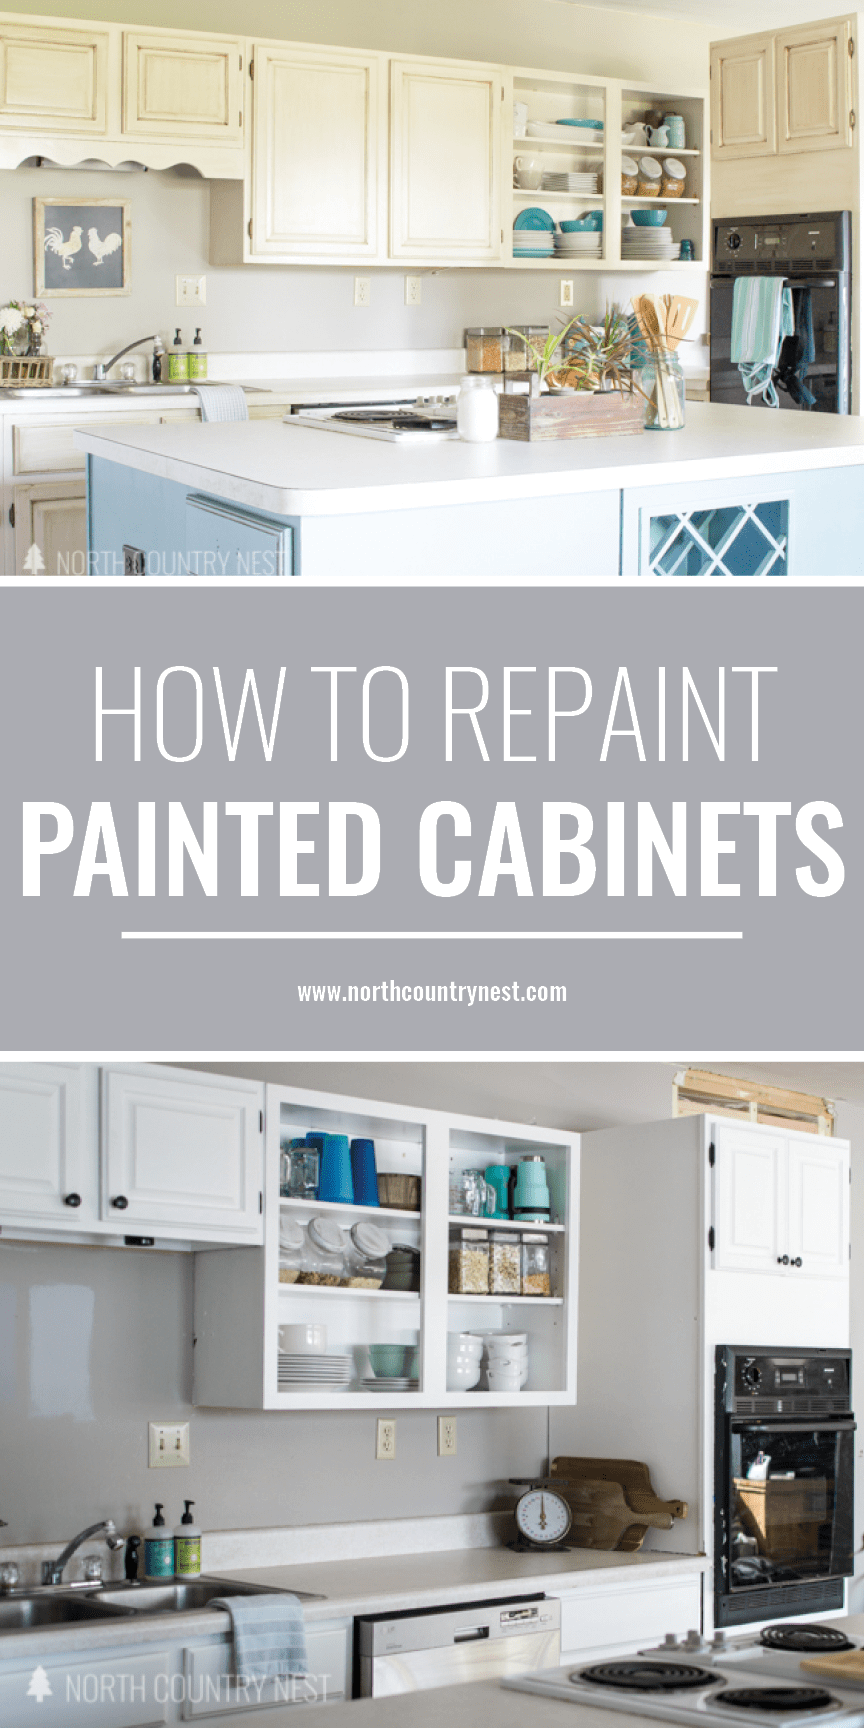 How to Repaint Painted Cabinets | Crafts & DIY Projects | Pinterest ...